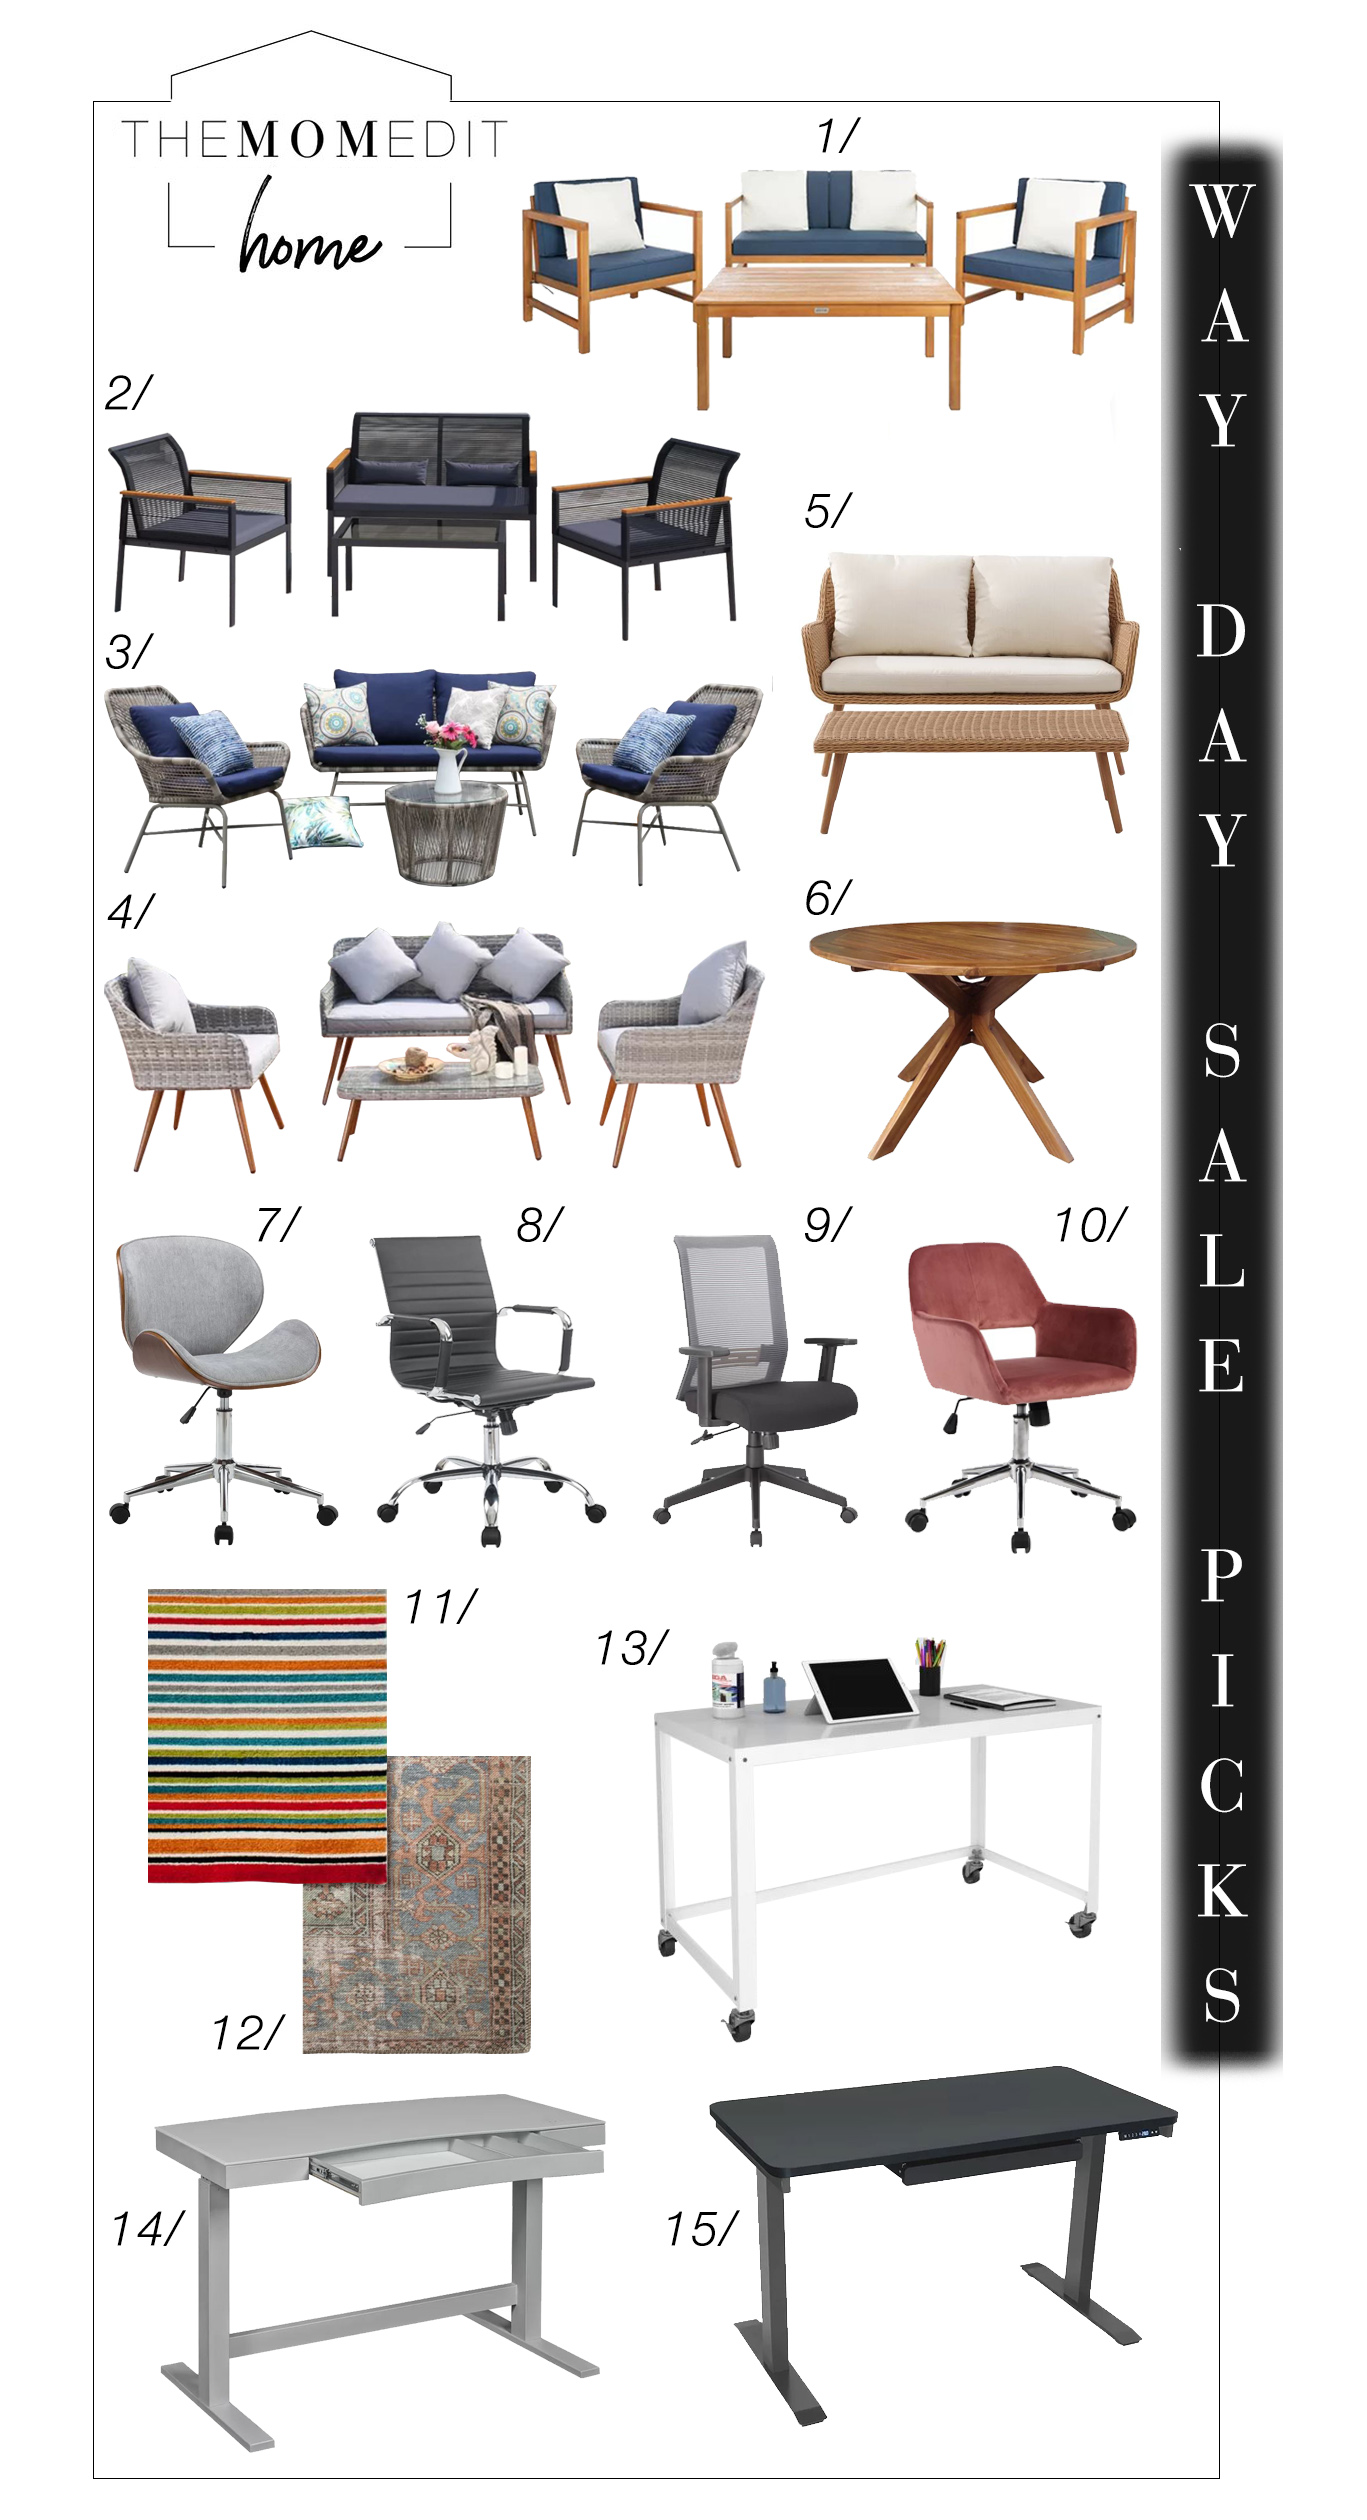 15 strong deals on indoor & outdoor furniture -- desk chairs, desks & patio sets, + a few rugs. We're shopping Wayfair's Way Days sale - go!